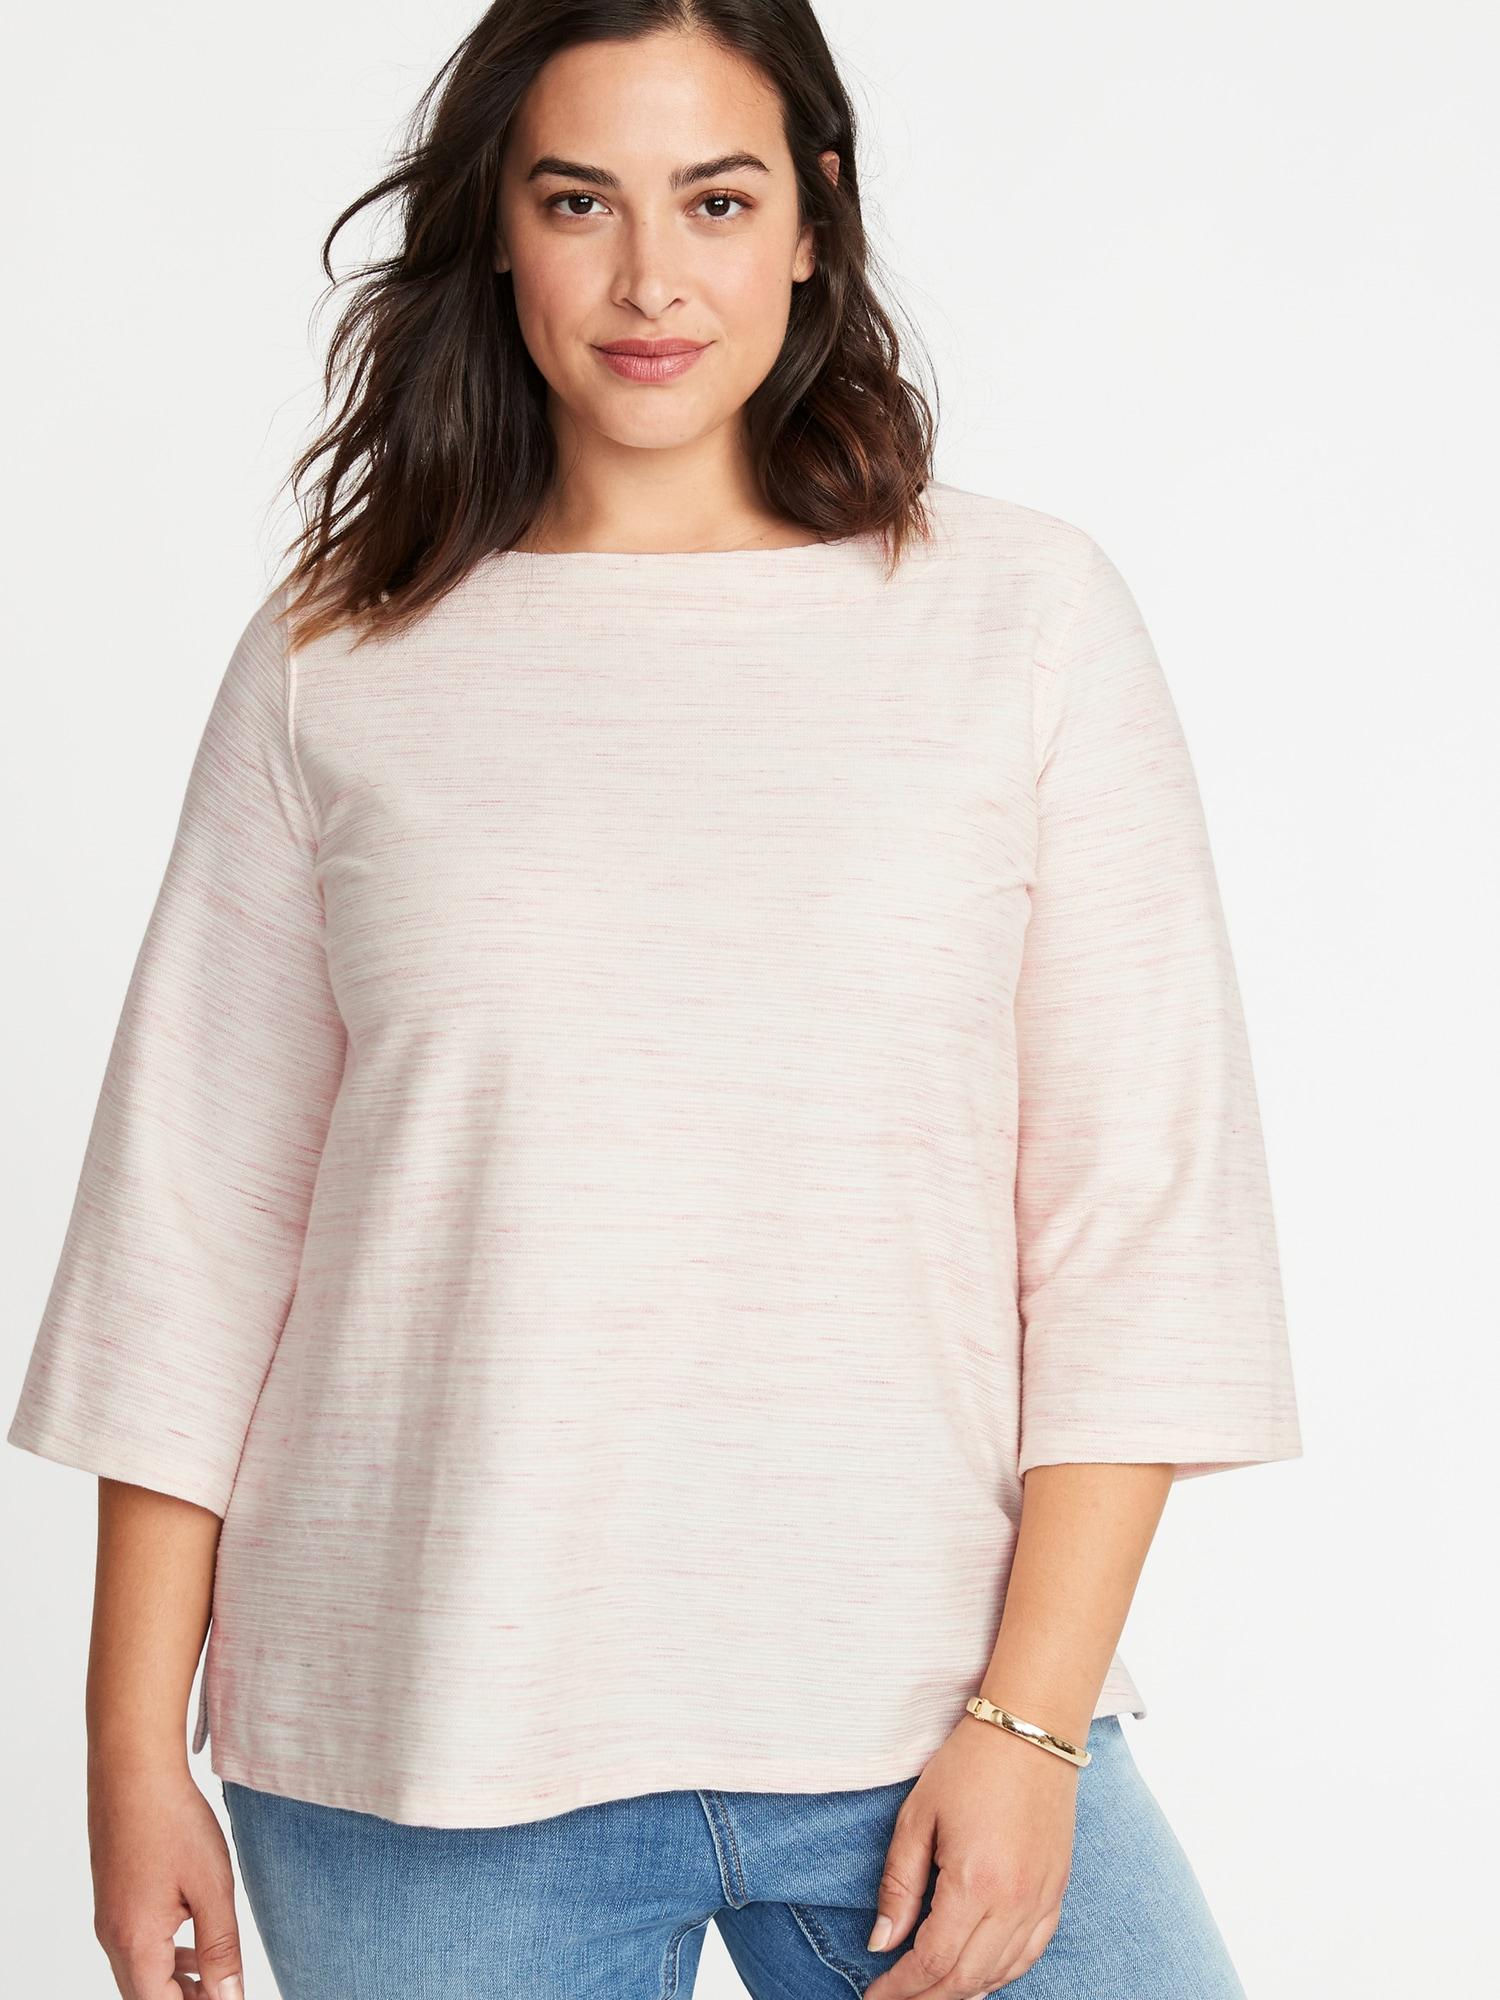 73c87950b4ae Lyst - Old Navy Plus-size Textured Boat-neck Top in Red